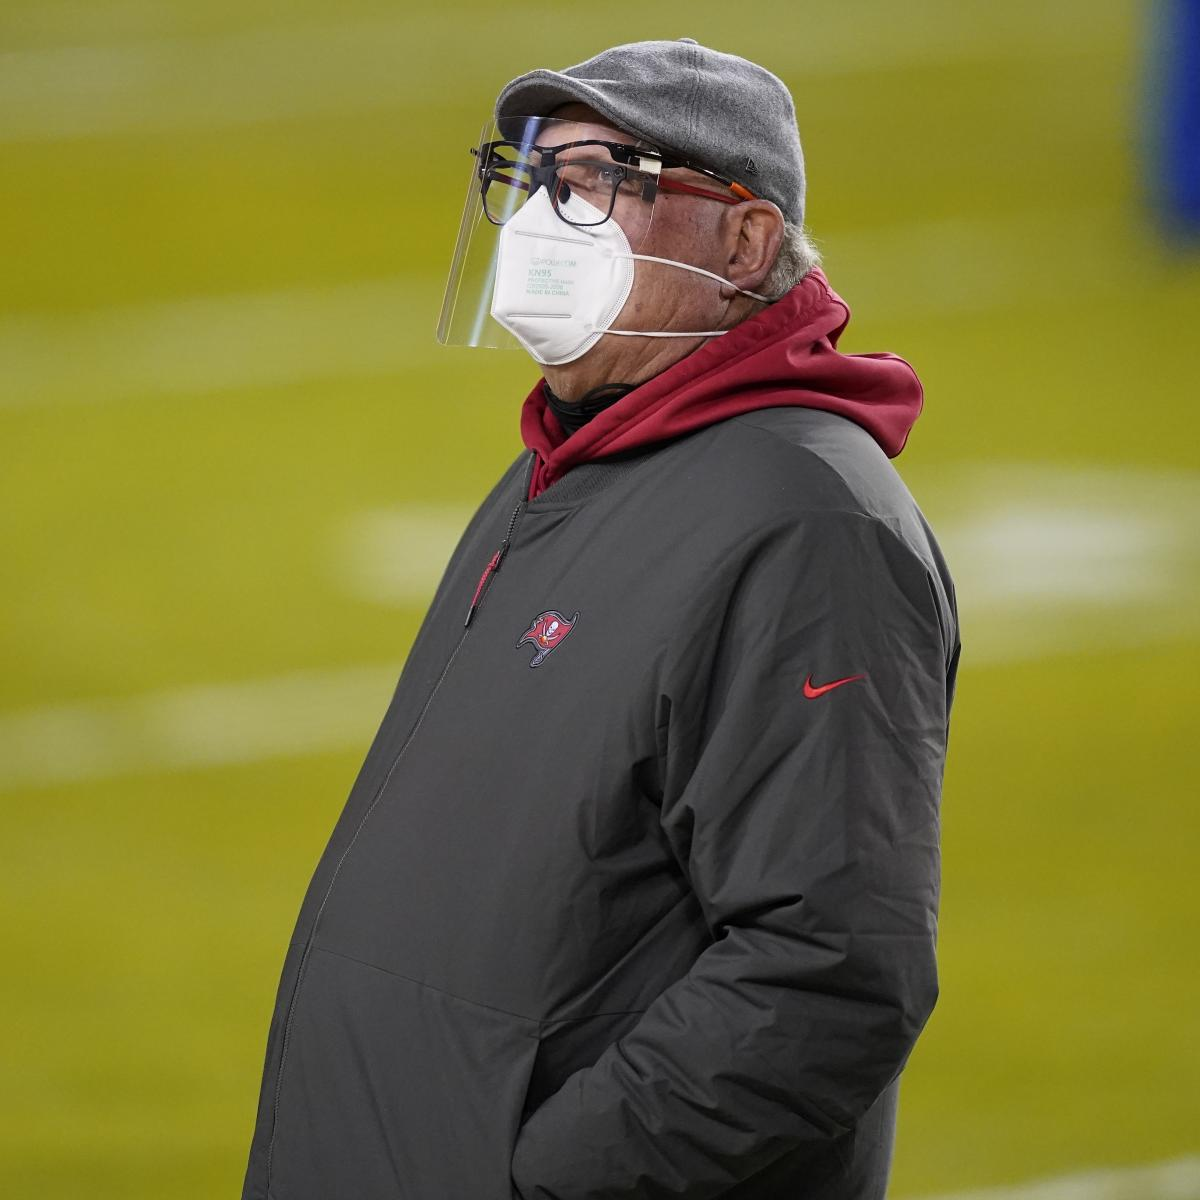 Arians: Not Really Excited to Face Patrick Mahomes Travis Kelce and Tyreek Hill – Bleacher Report